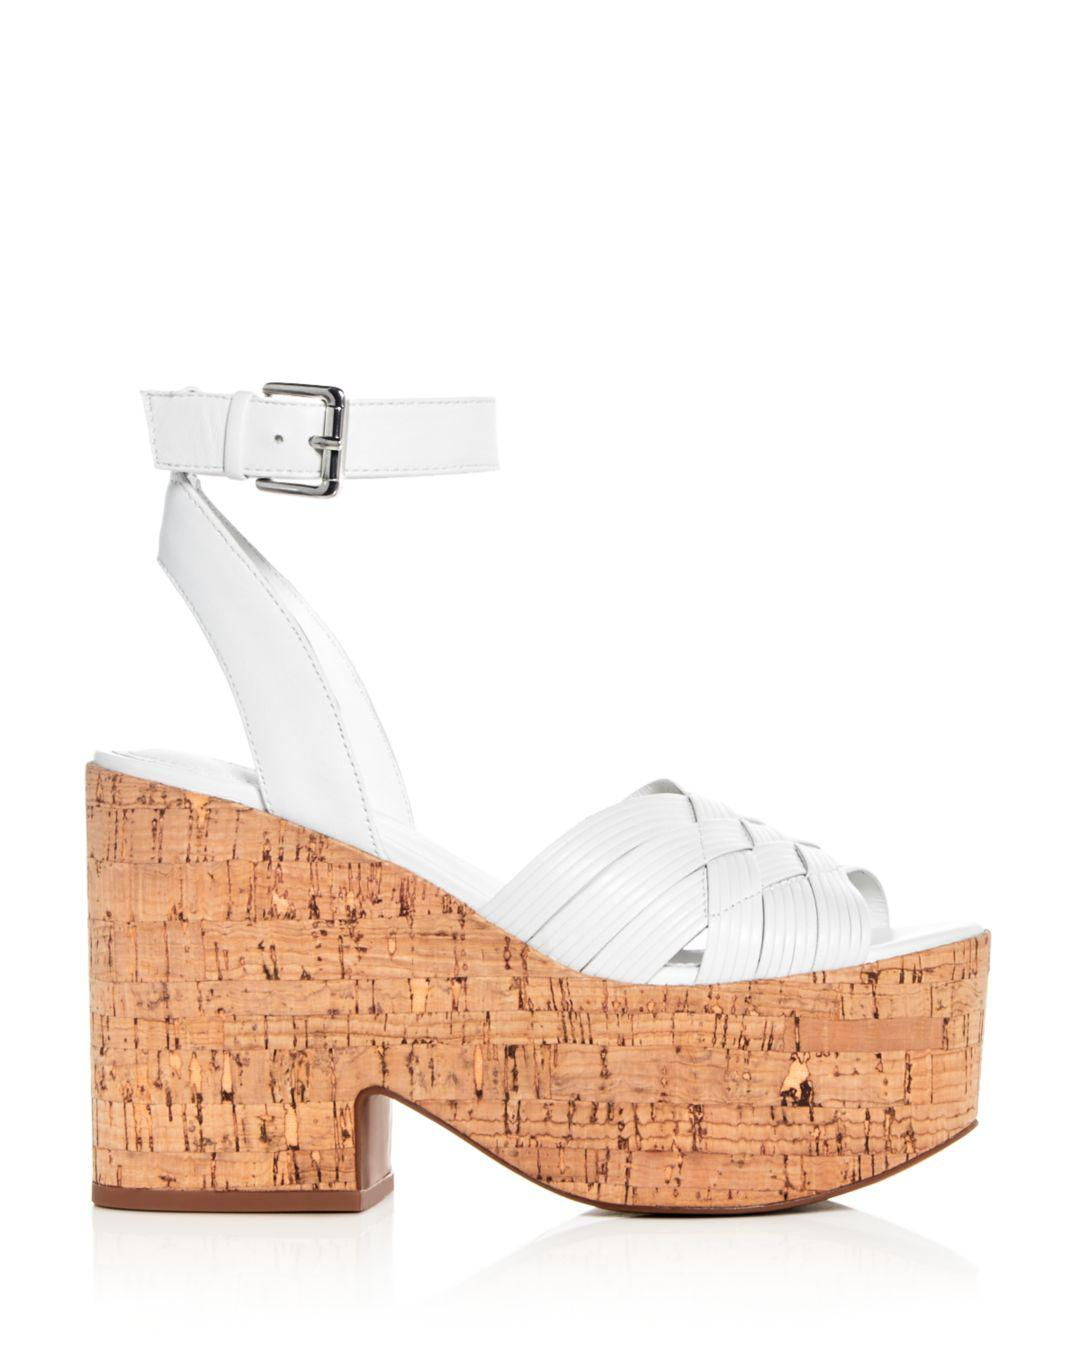 4739a750fdb4 Lyst - Sigerson Morrison Women s Becca Leather Platform Wedge Sandals in  White - Save 52%